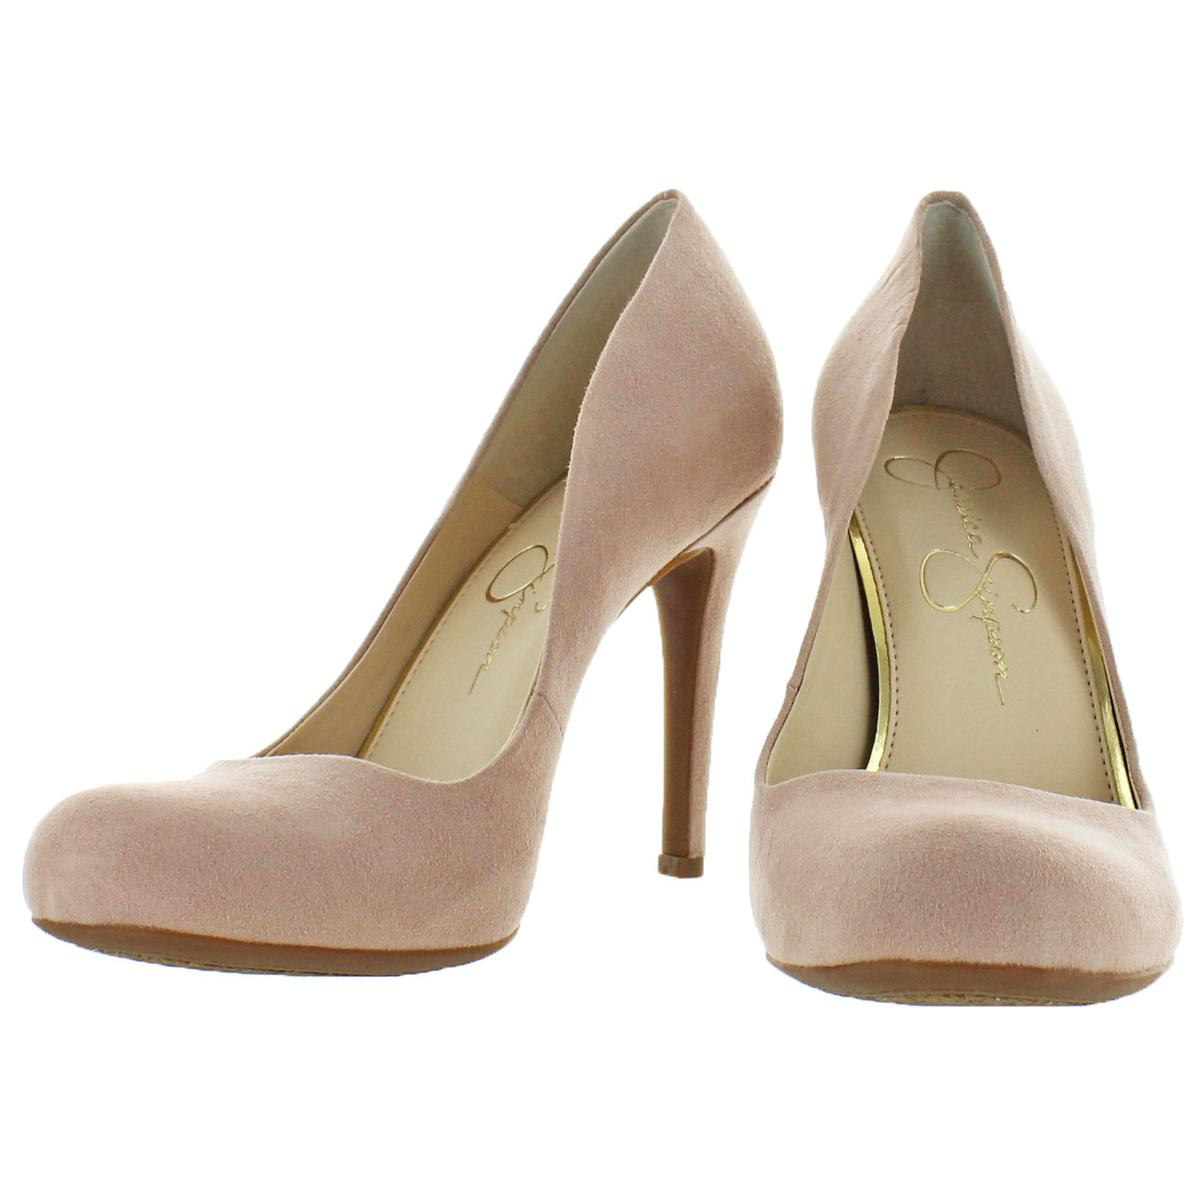 Jessica-Simpson-Women-039-s-Calie-Round-Toe-Classic-Heels-Pumps-Shoes thumbnail 7